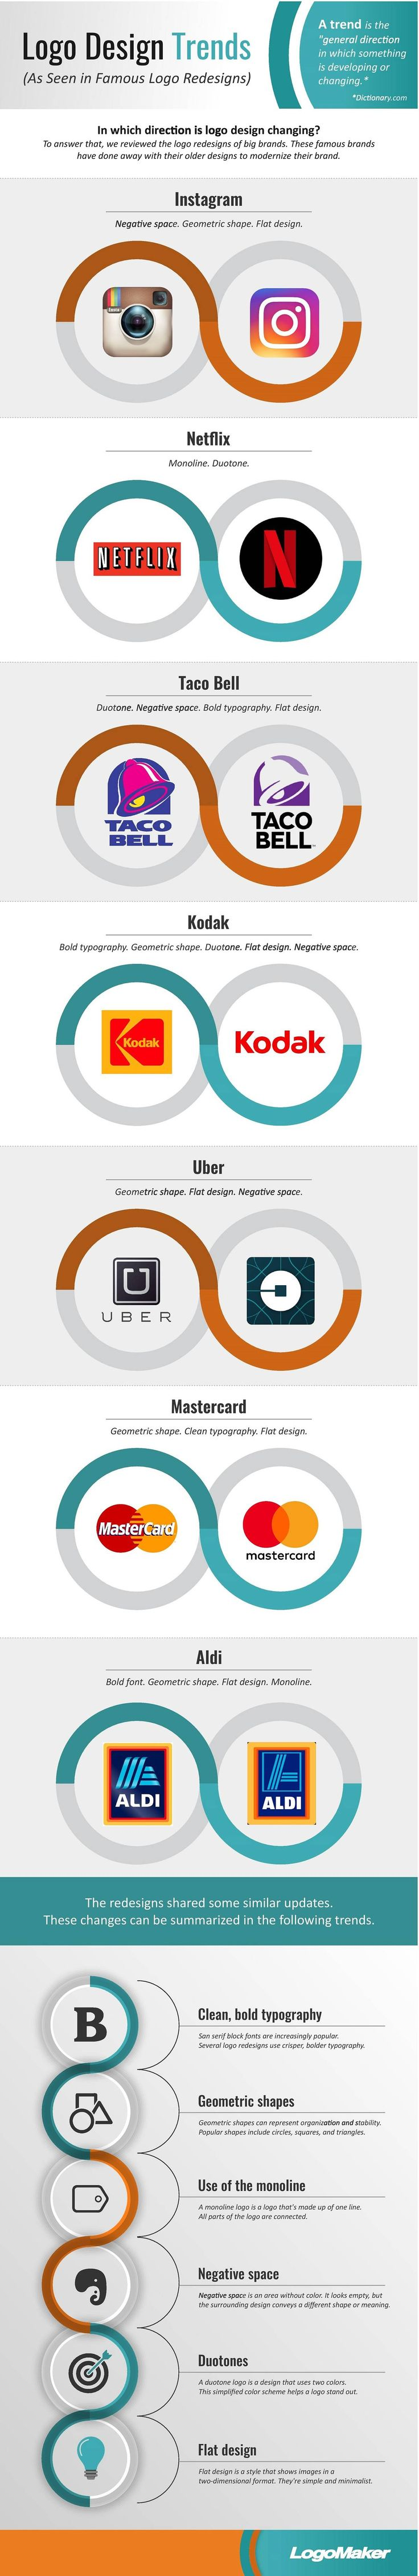 Logo Design Trends (As Seen in Famous Logo Redesigns) #Infographic #Design #Logo